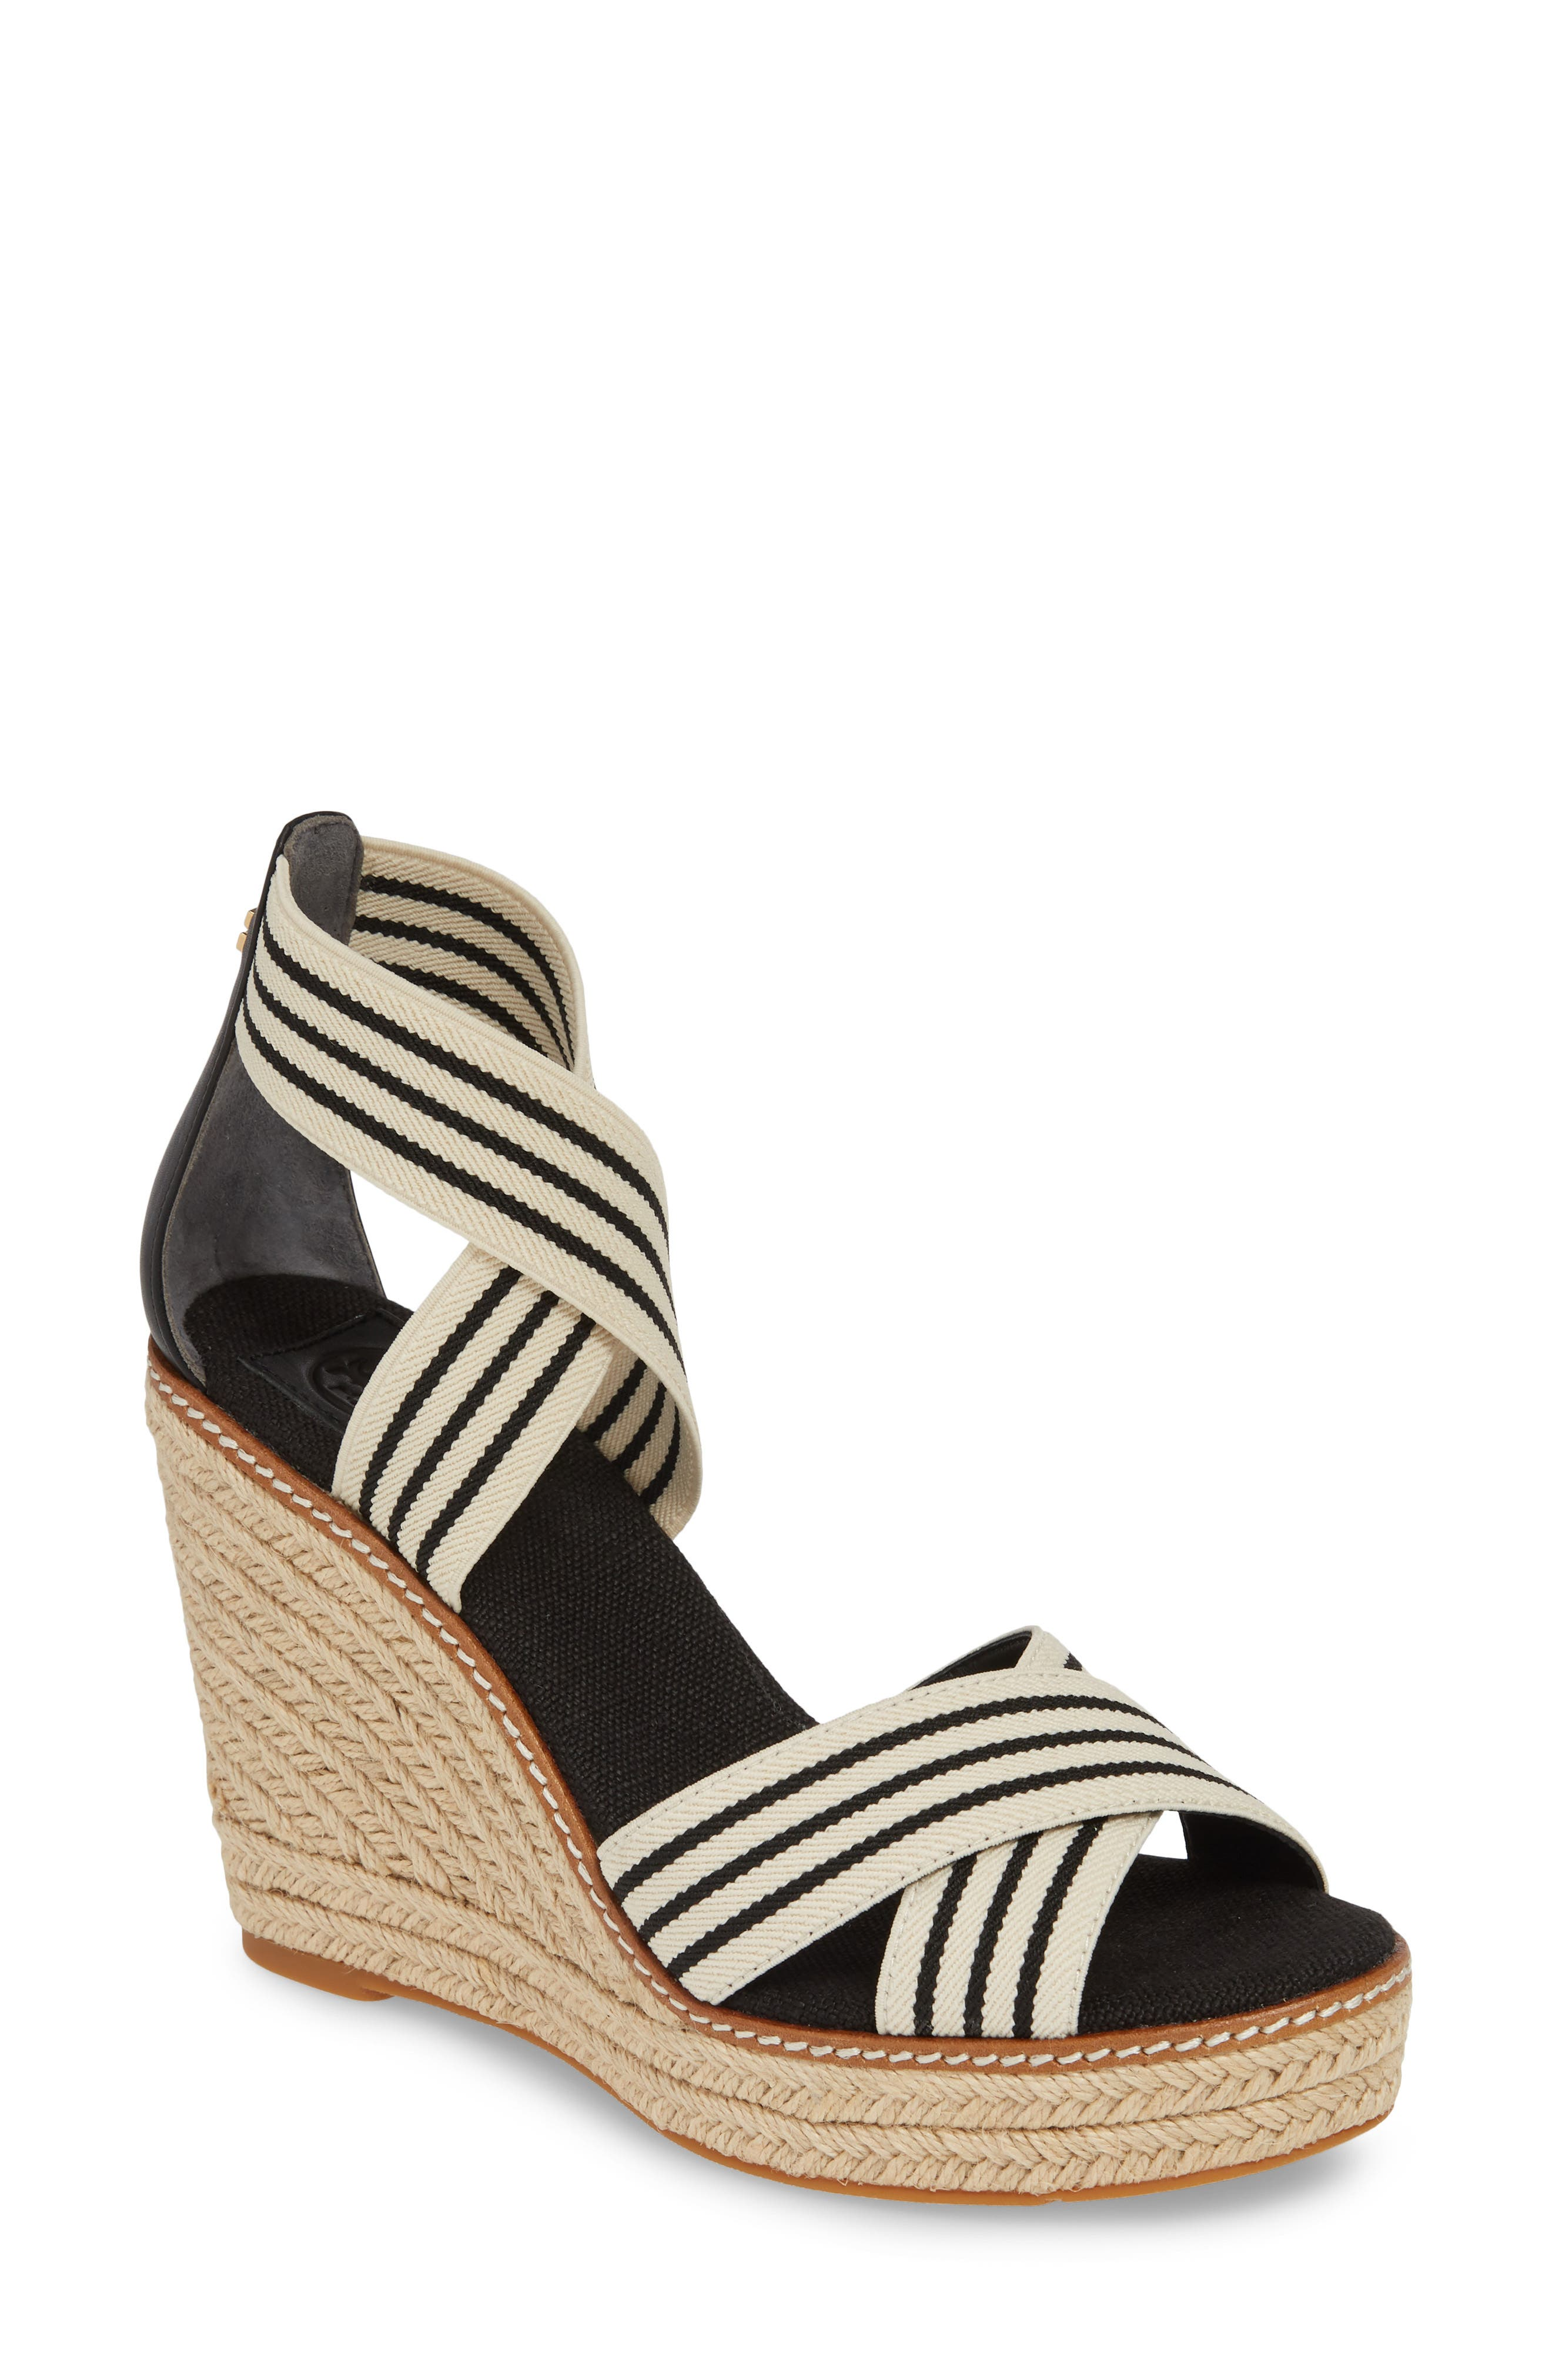 023d73cb9 Tory Burch Wedges